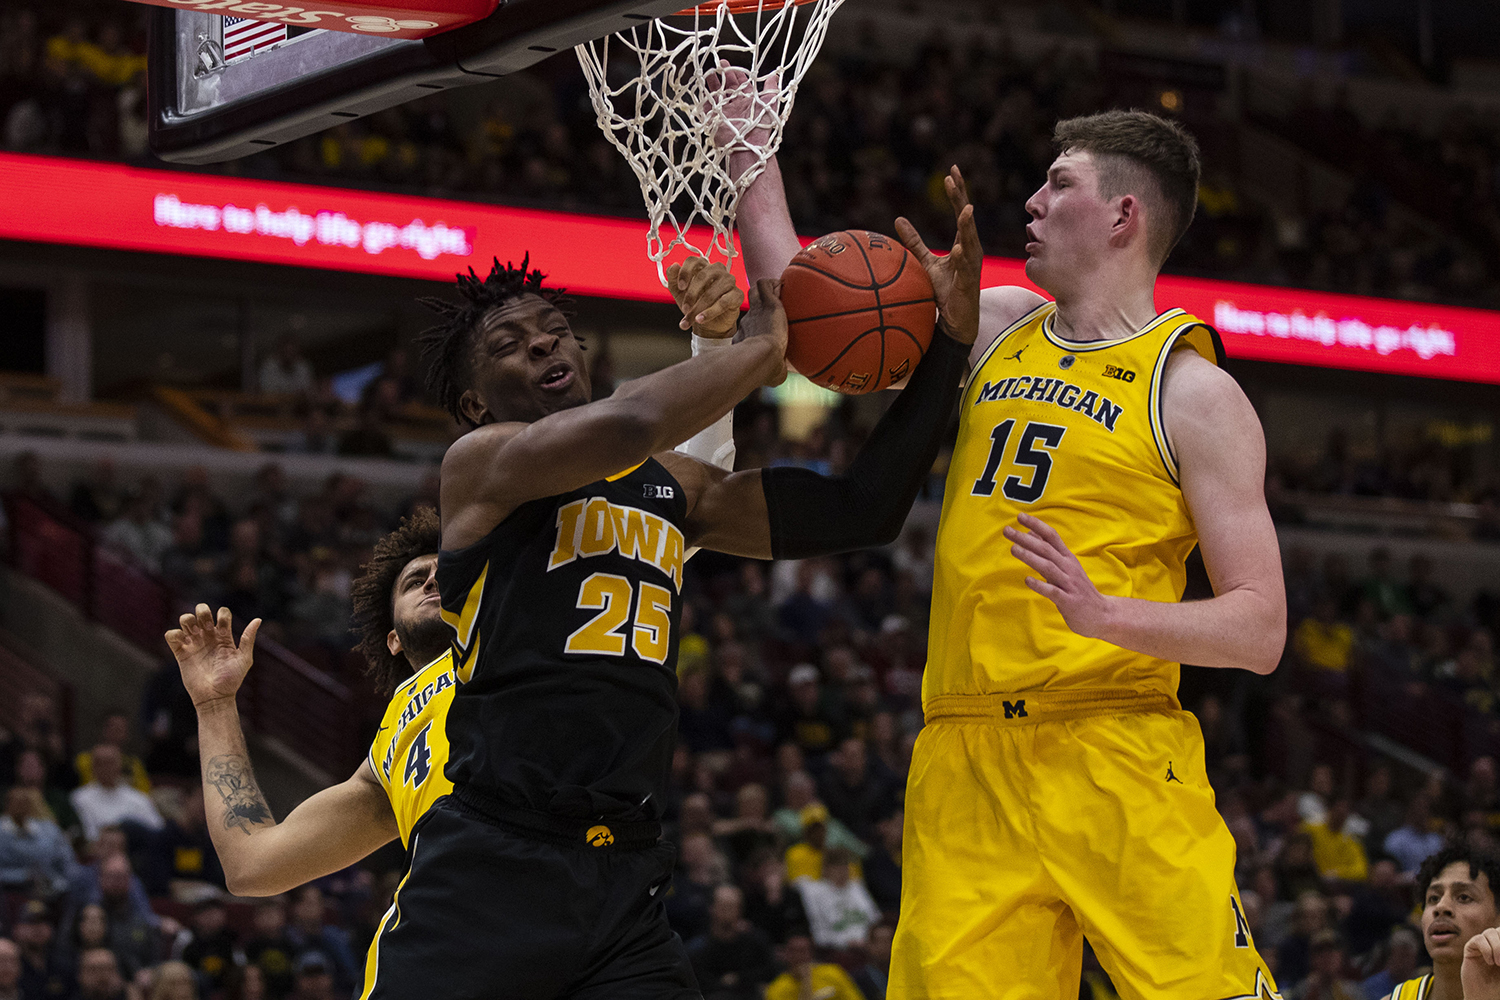 Iowa forward Tyler Cook loses control of the ball during the Iowa/Michigan Big Ten Tournament men's basketball game in the United Center in Chicago on Friday, March 15, 2019. The Wolverines defeated the Hawkeyes, 74-53.